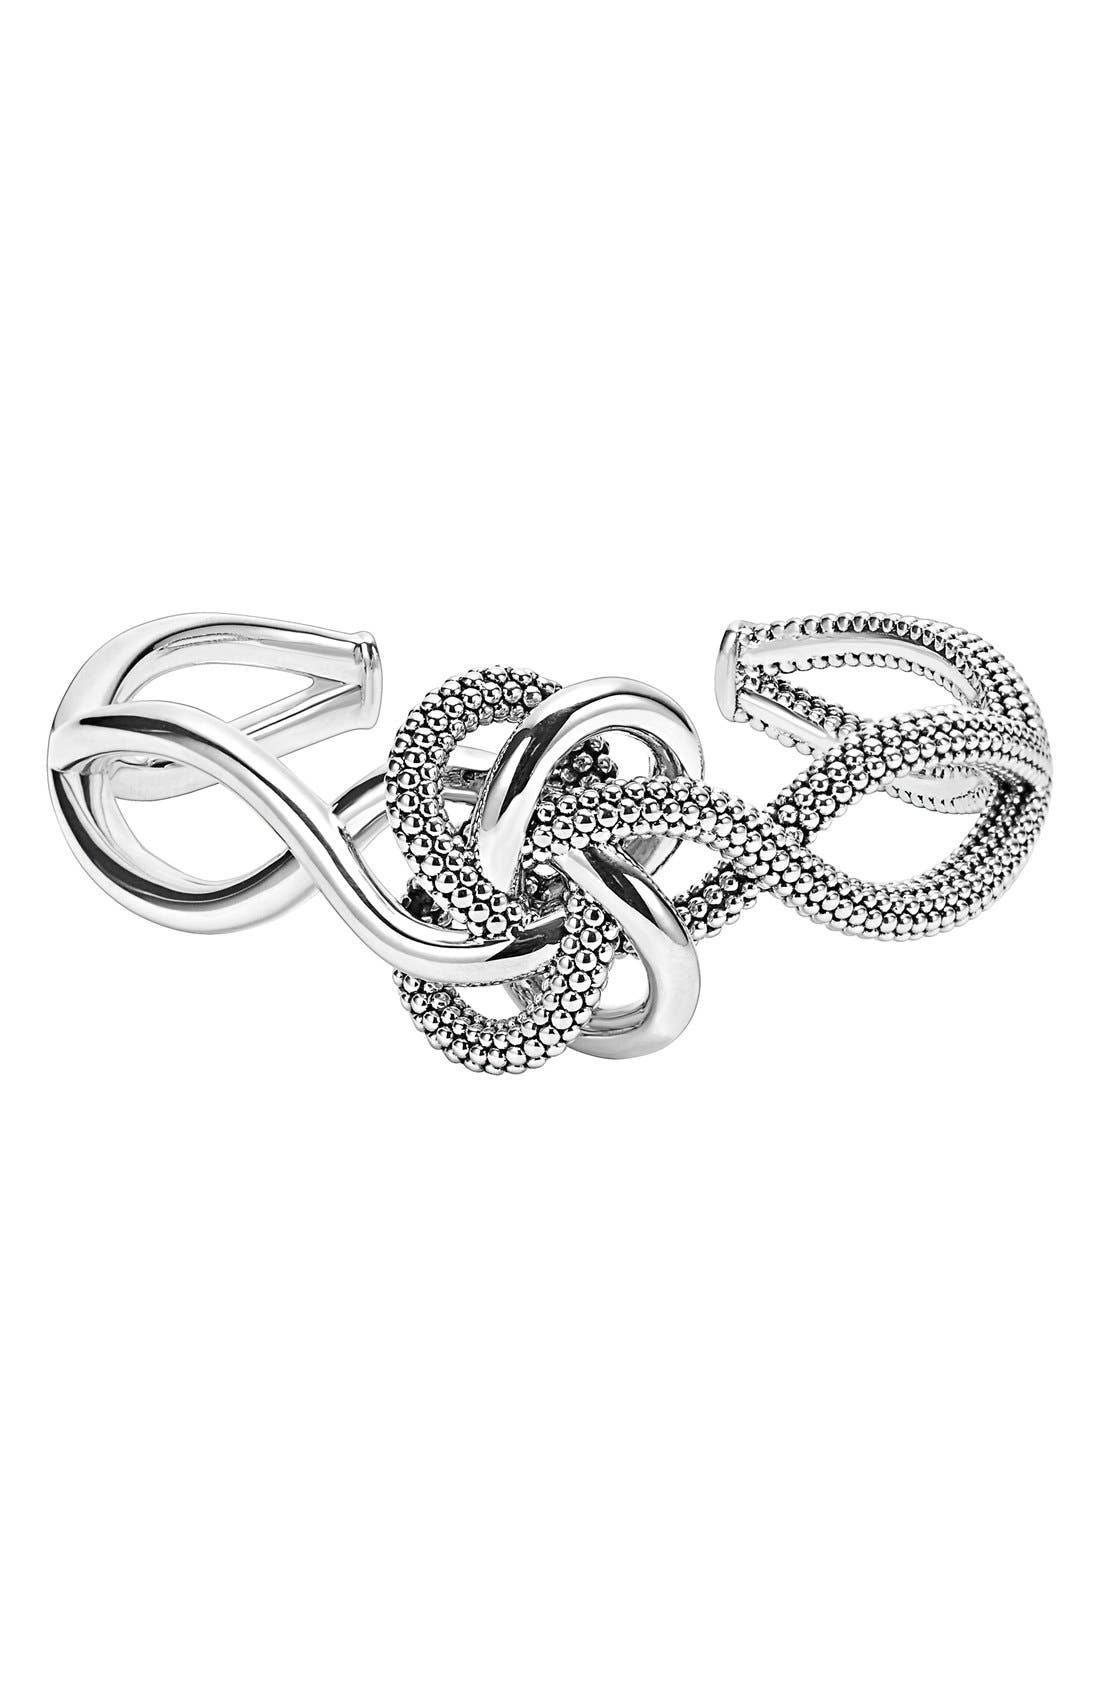 'Love Knot' Cuff,                         Main,                         color, Sterling Silver